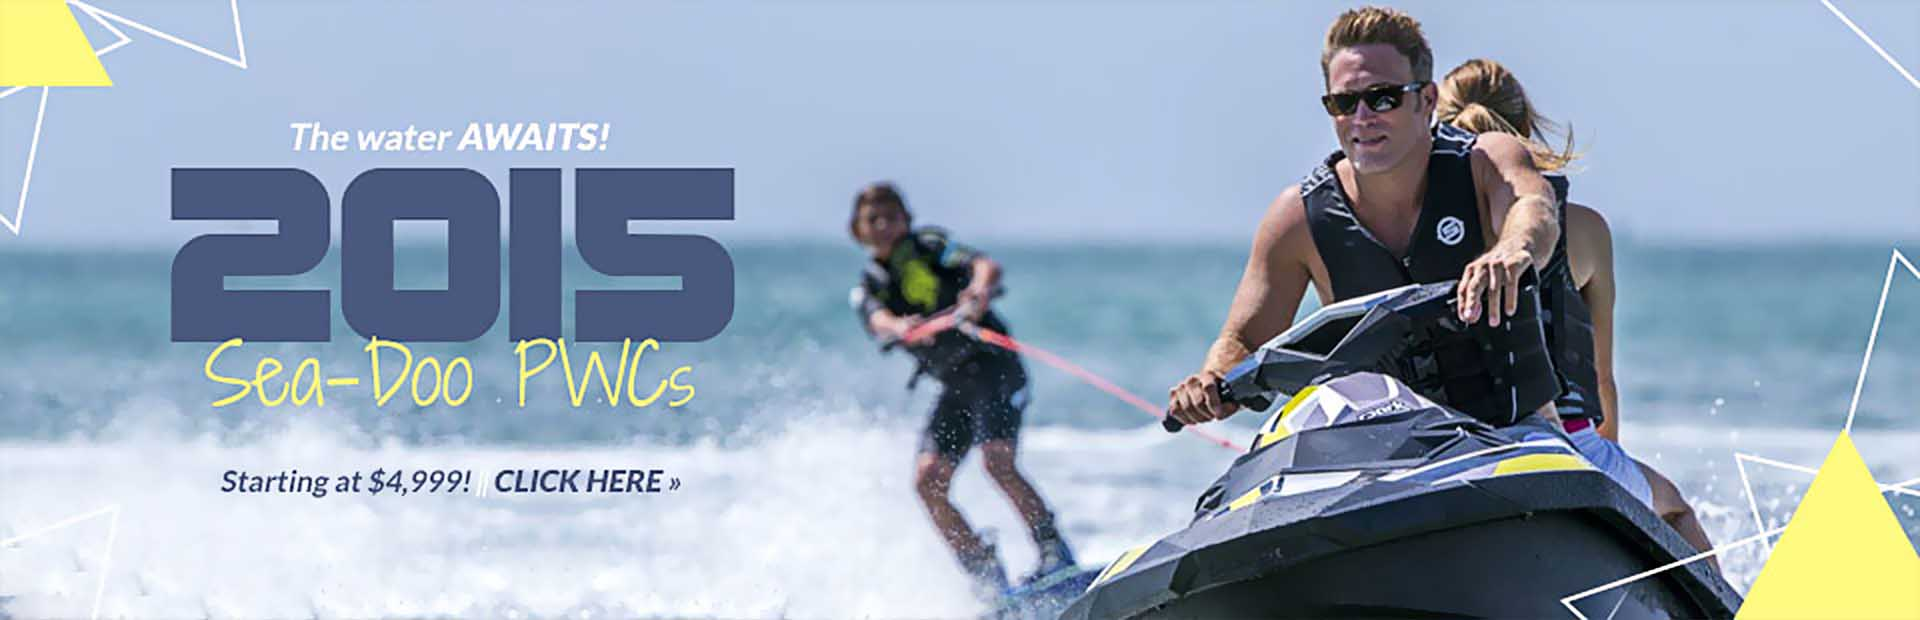 2015 Sea-Doo PWCs start at $4,999! Click here to view the models.